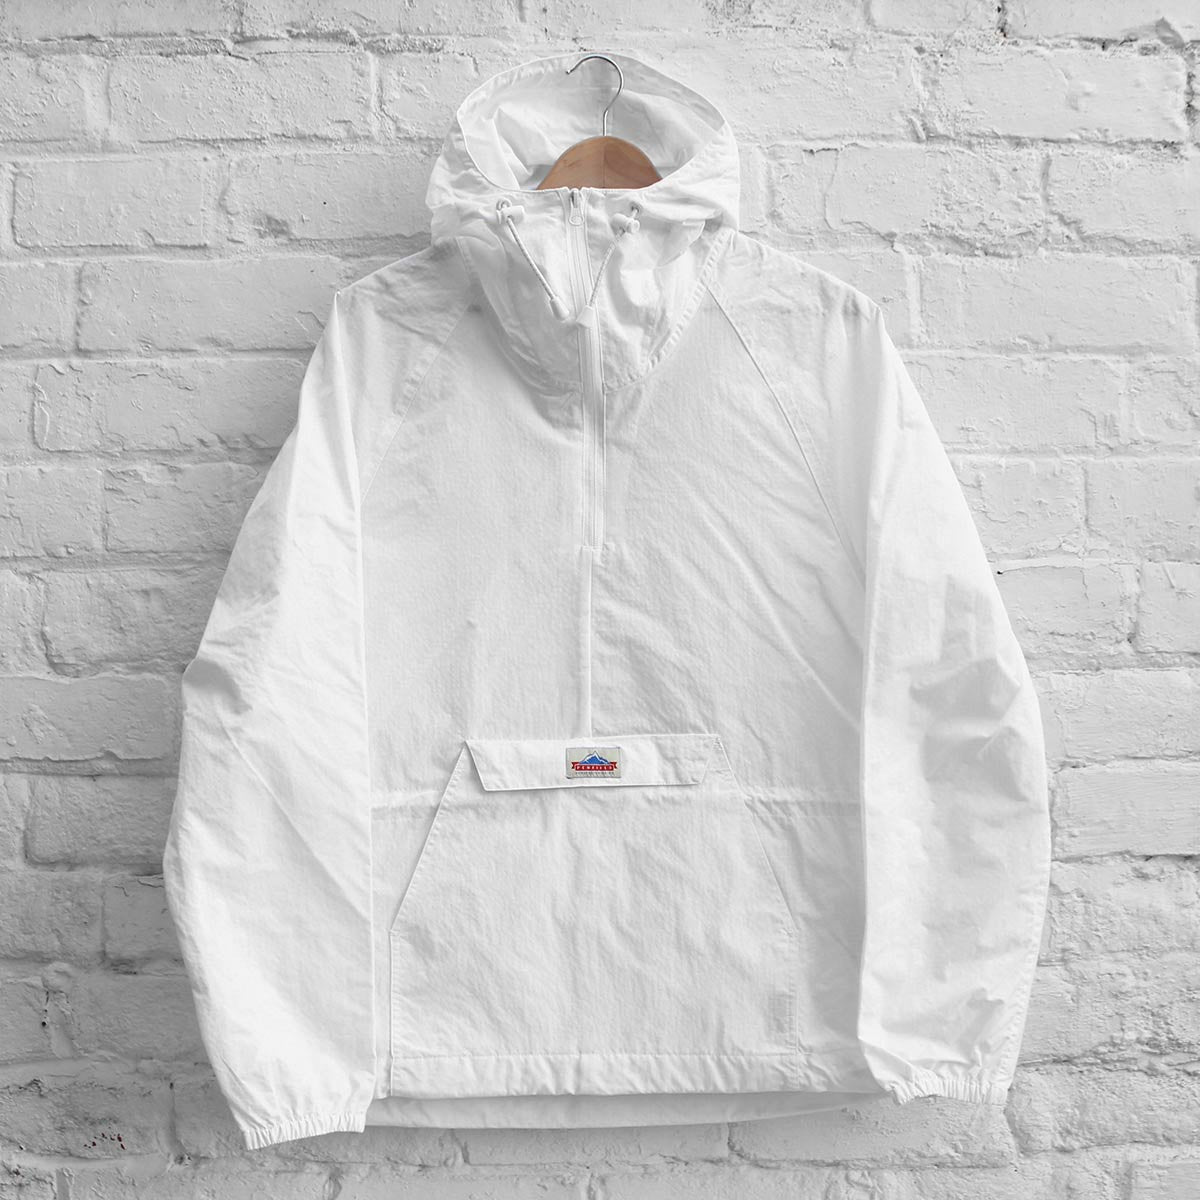 Penfield Pac Jac Packable Jacket White